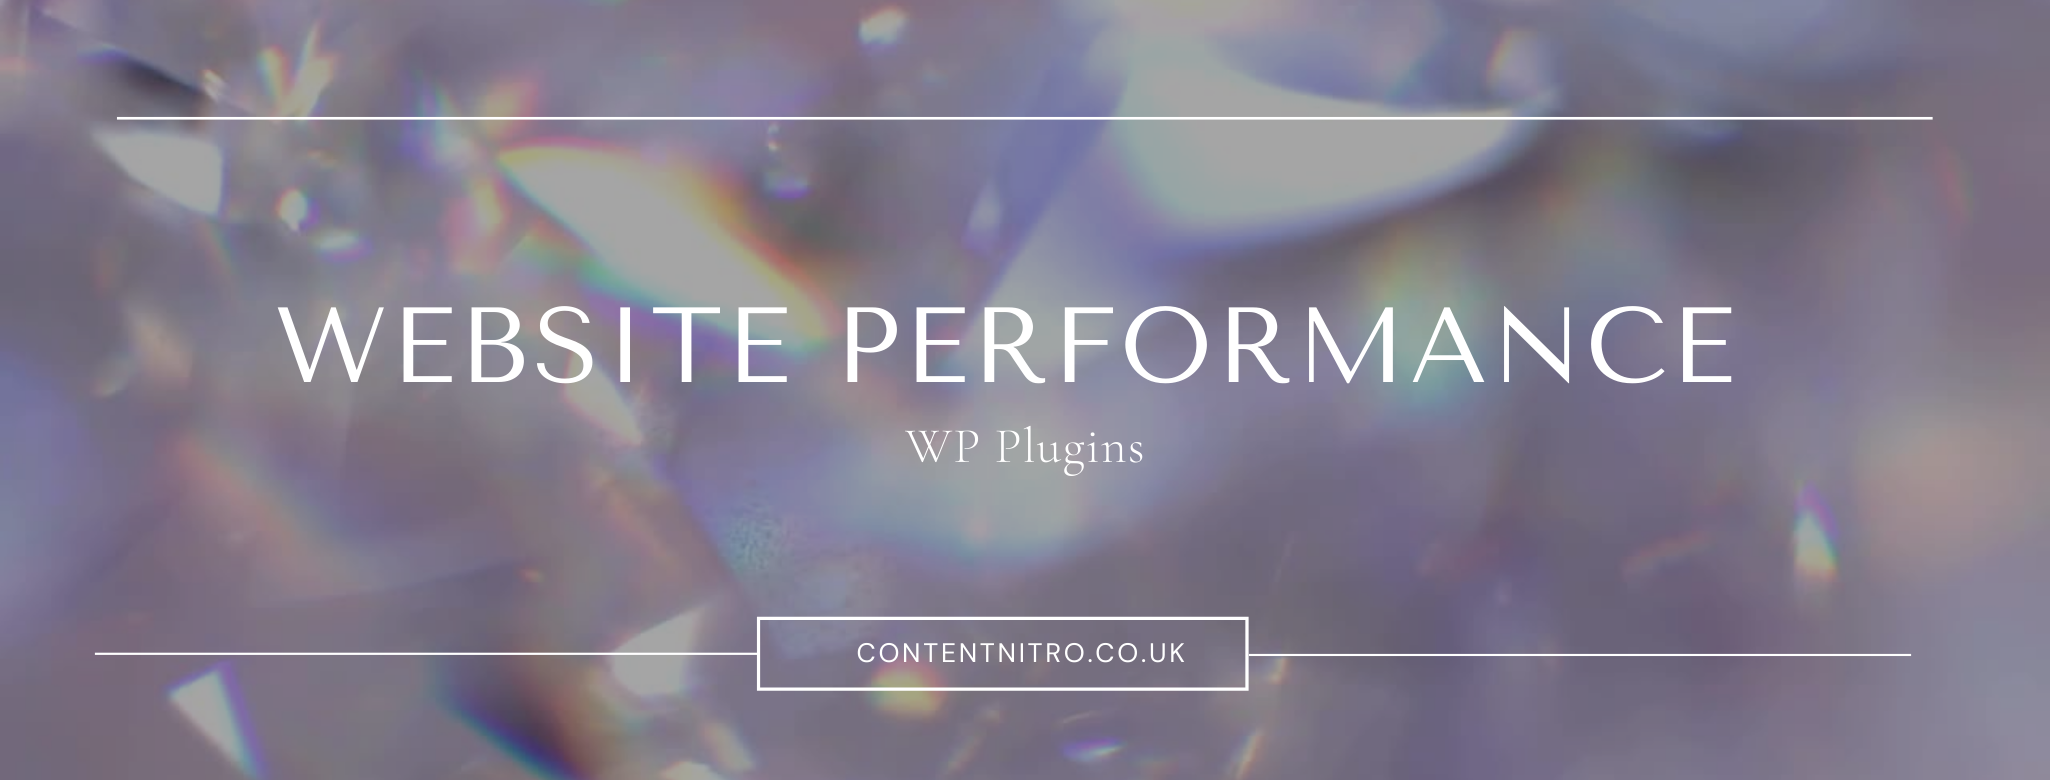 Boost Your Website's Performance With These WP Plugins via @saraharrow